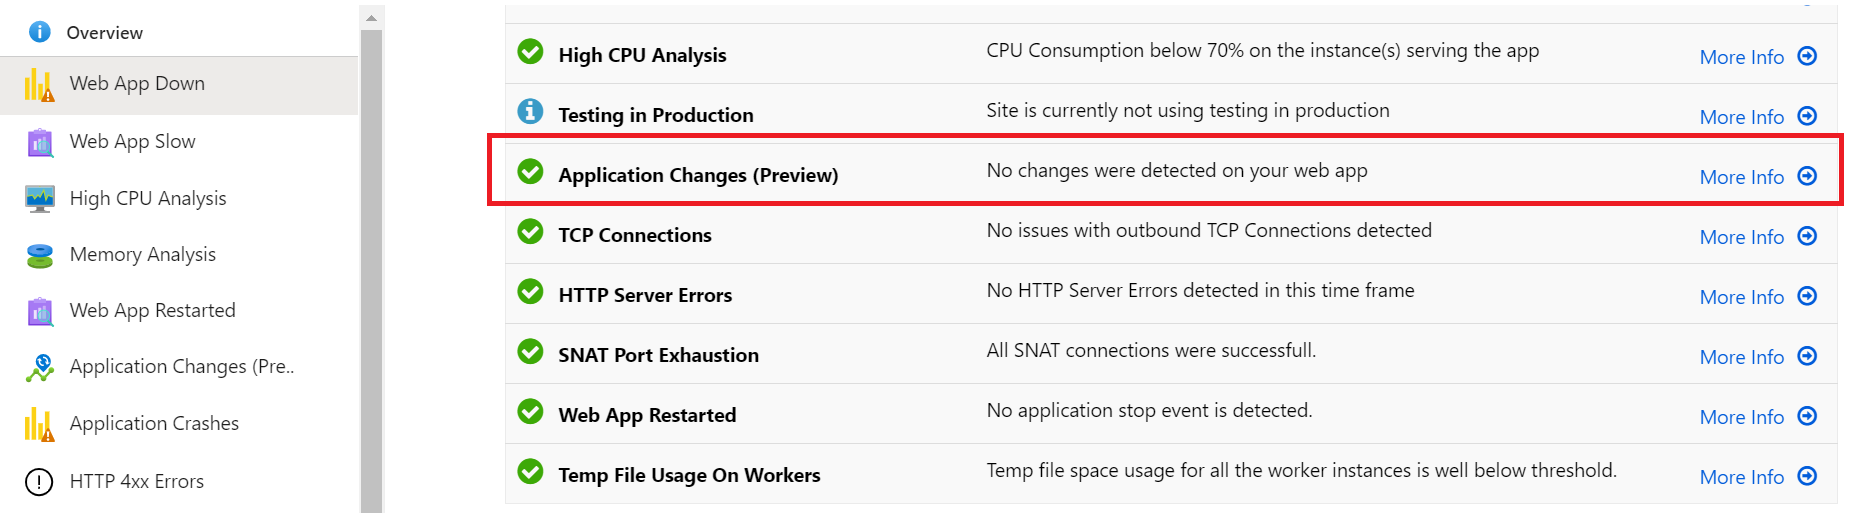 Use Application Change Analysis in Azure Monitor to find web-app